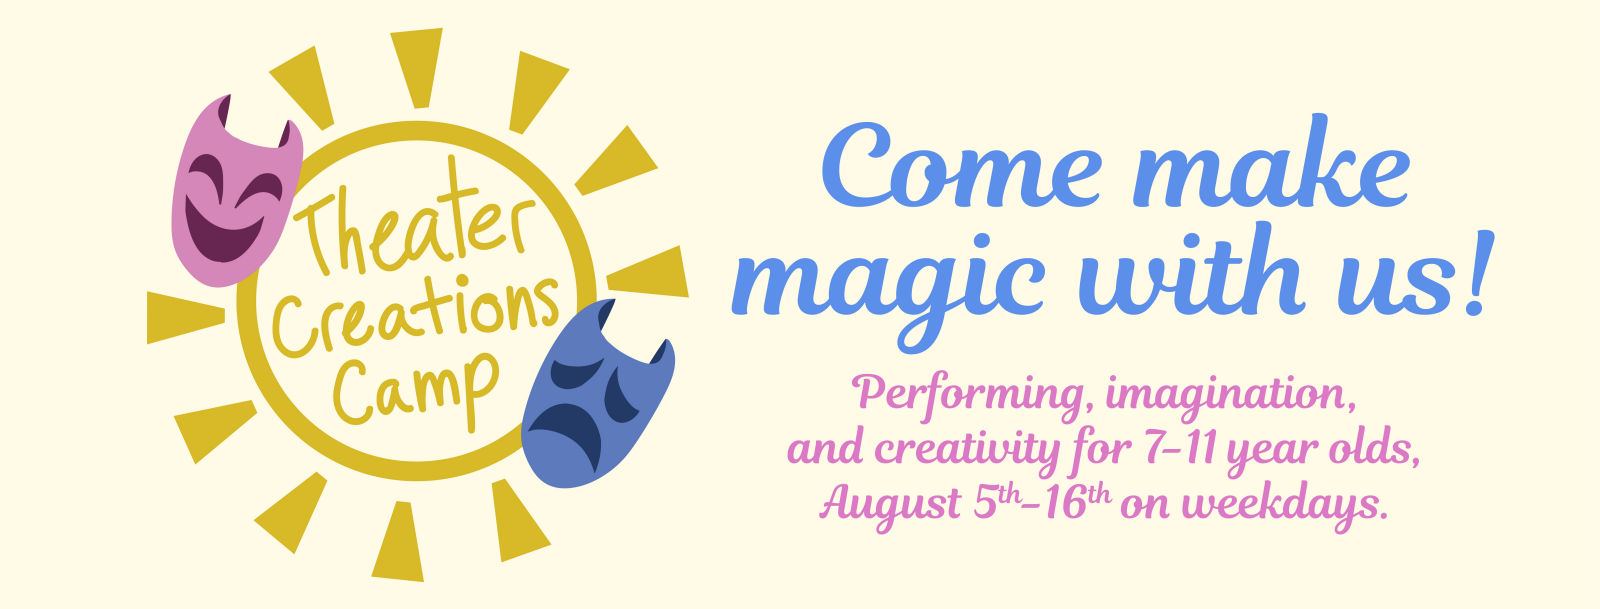 Theater Creations Camp